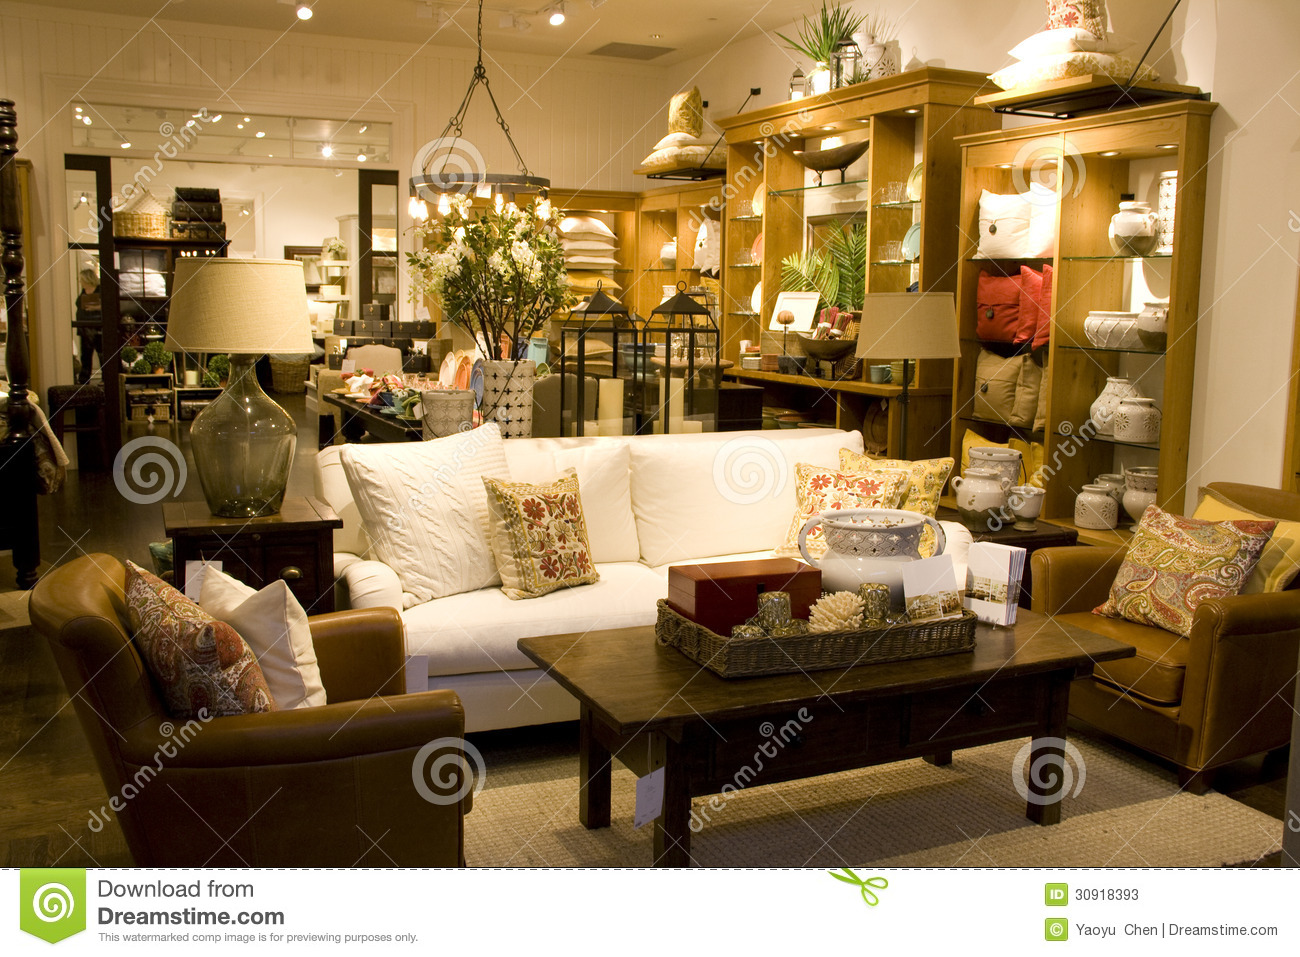 Furniture and home decor store stock image image 30918393 - Home furnishing stores ...